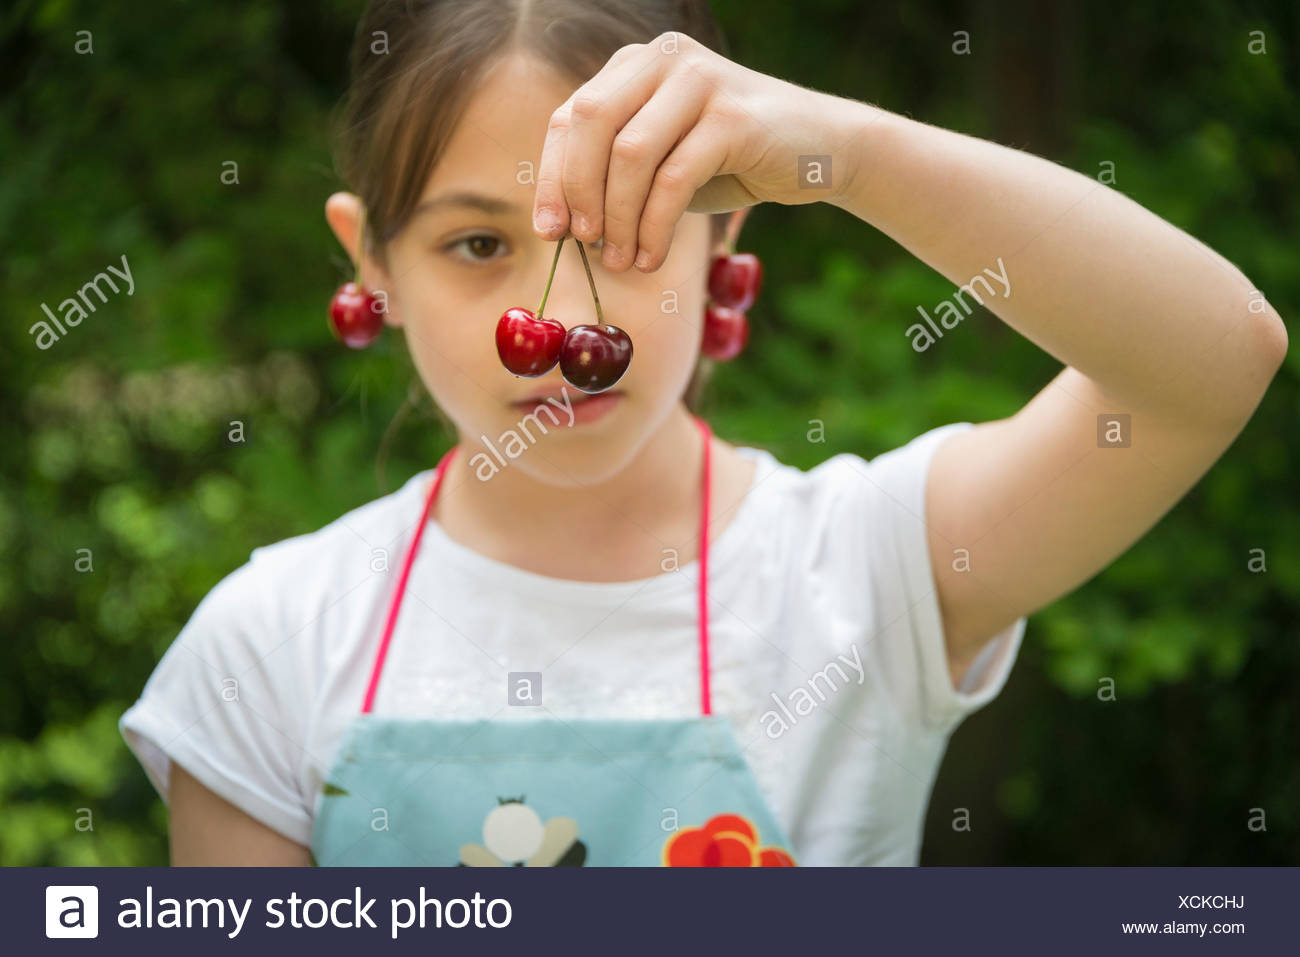 Girl with cherries dangling from her ears - Stock Image